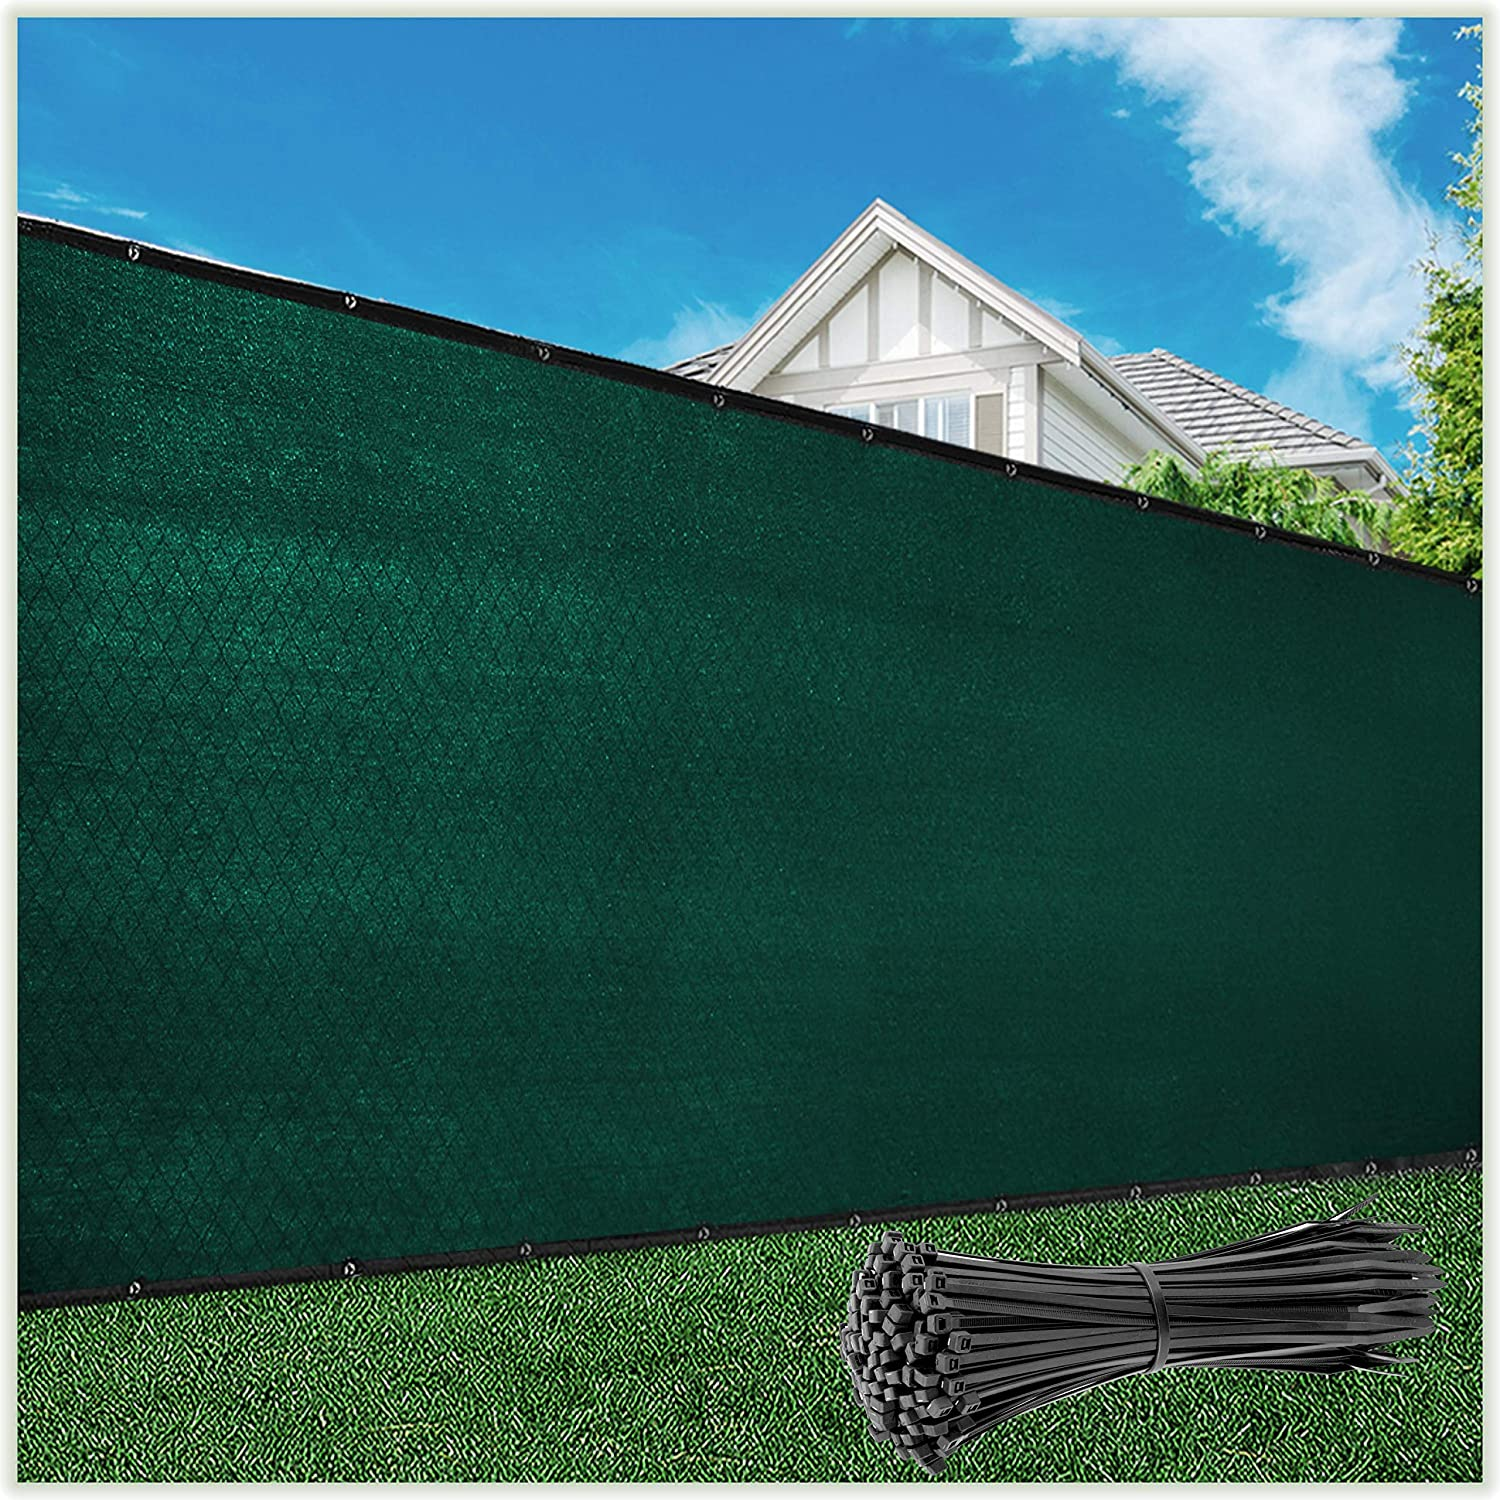 ColourTree 4' x 50' Green Fence Privacy Screen Windscreen Cover Fabric Shade Tarp Netting Mesh Cloth - Commercial Grade 170 GSM - Cable Zip Ties Included - We Make Custom Size